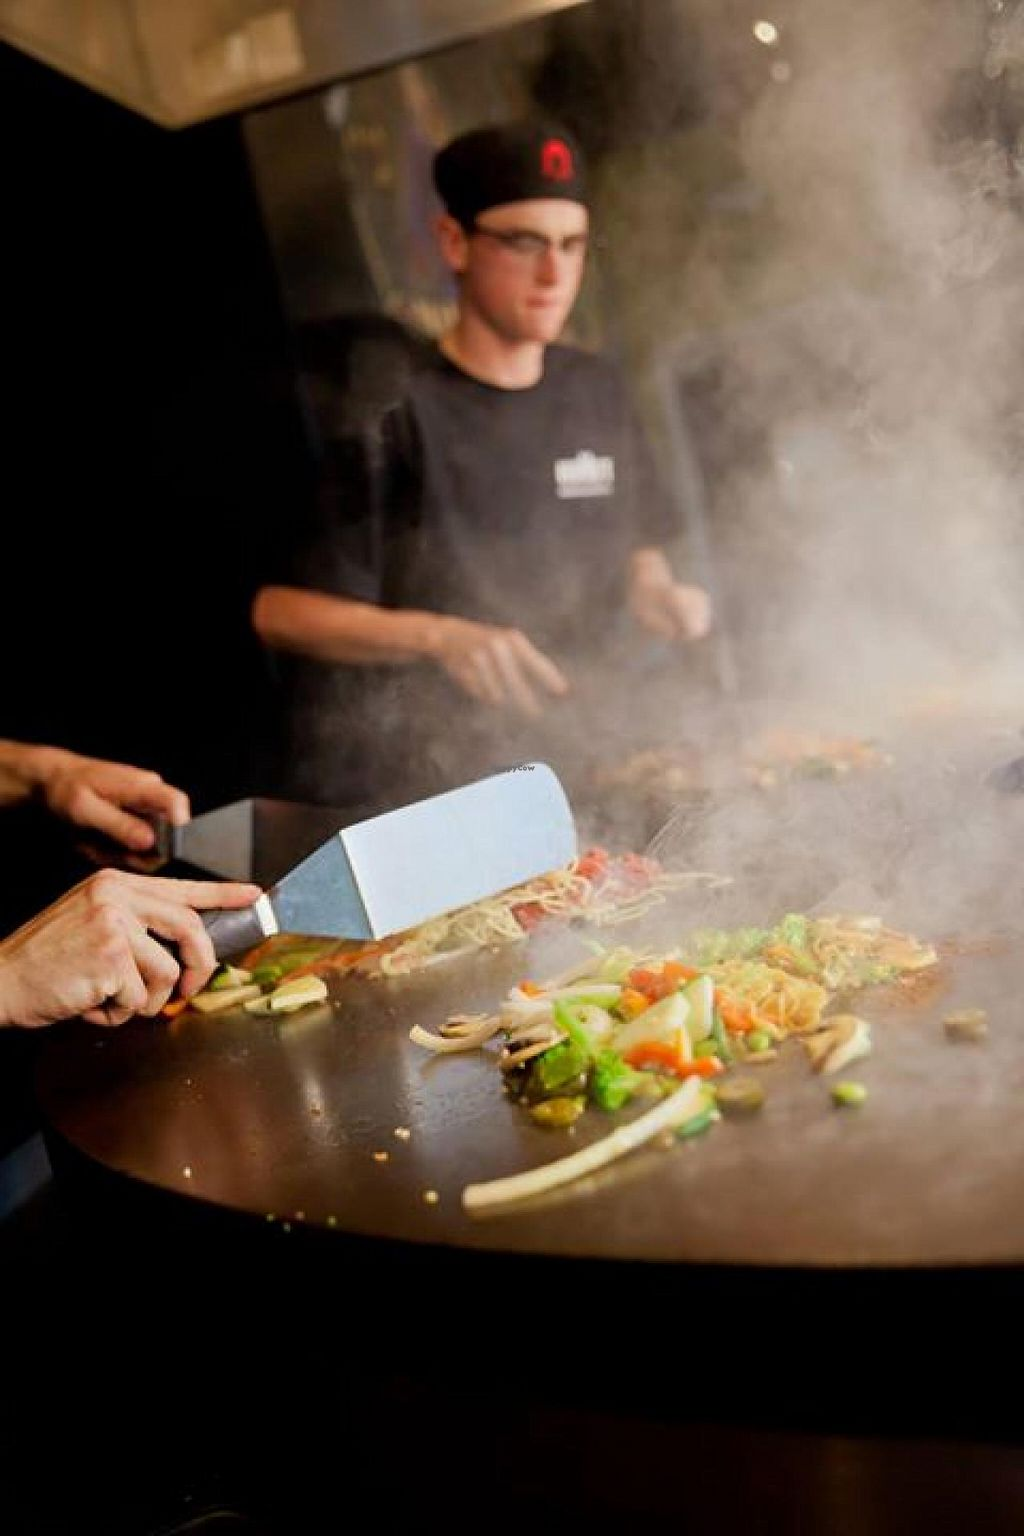 """Photo of HuHot Mongolian Grill   by <a href=""""/members/profile/community"""">community</a> <br/>HuHot Mongolian Grill <br/> March 13, 2014  - <a href='/contact/abuse/image/45832/65841'>Report</a>"""